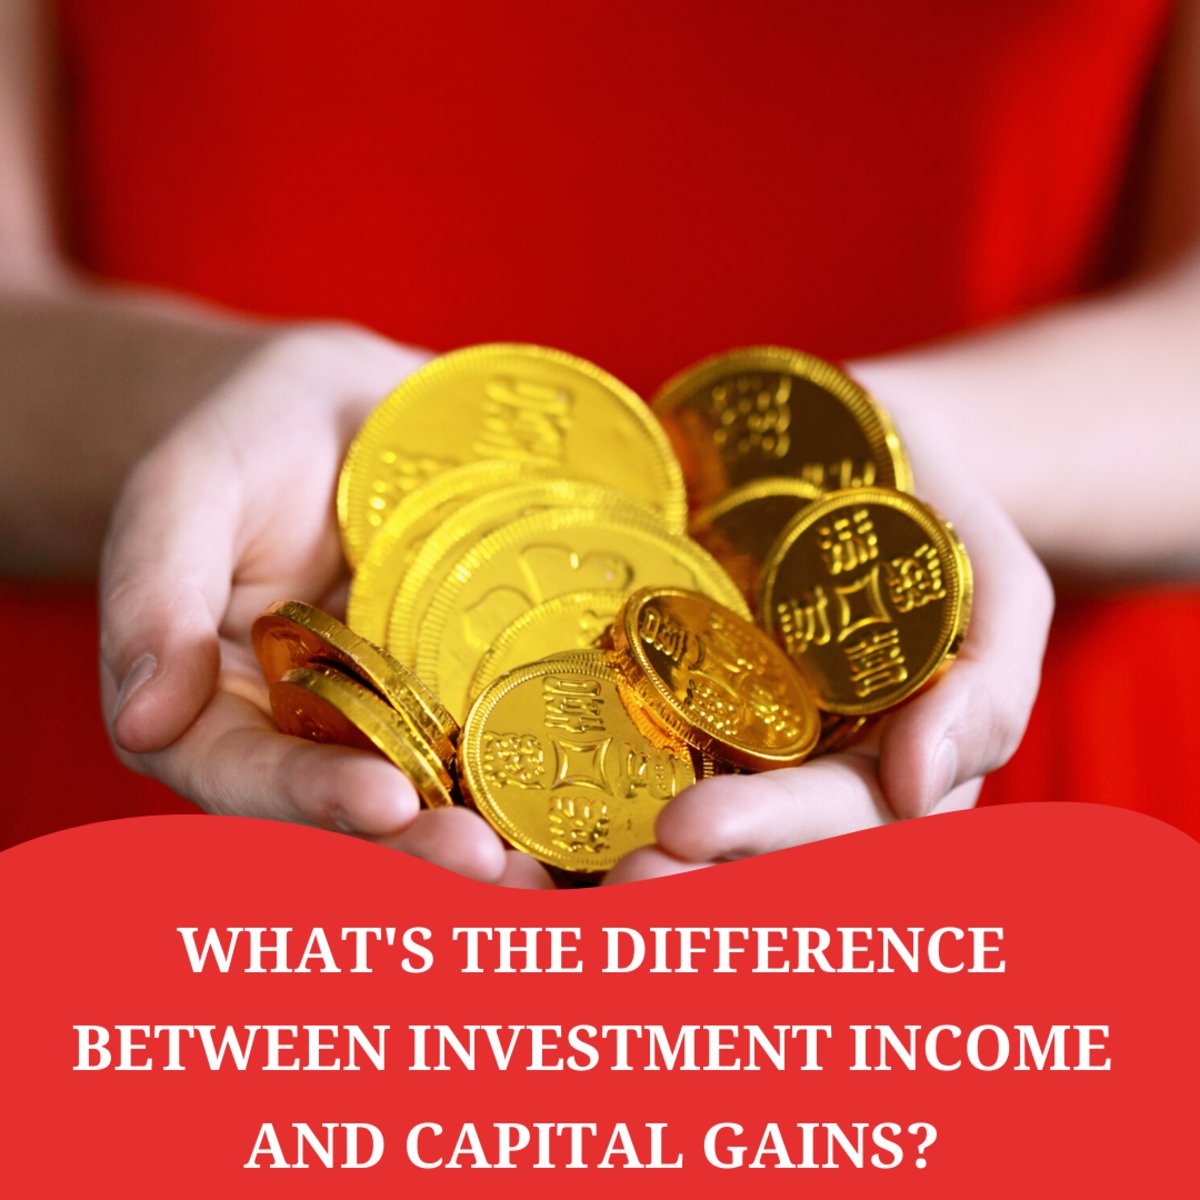 What Is the Difference Between Investment Income and Capital Gains? Which Is Better?